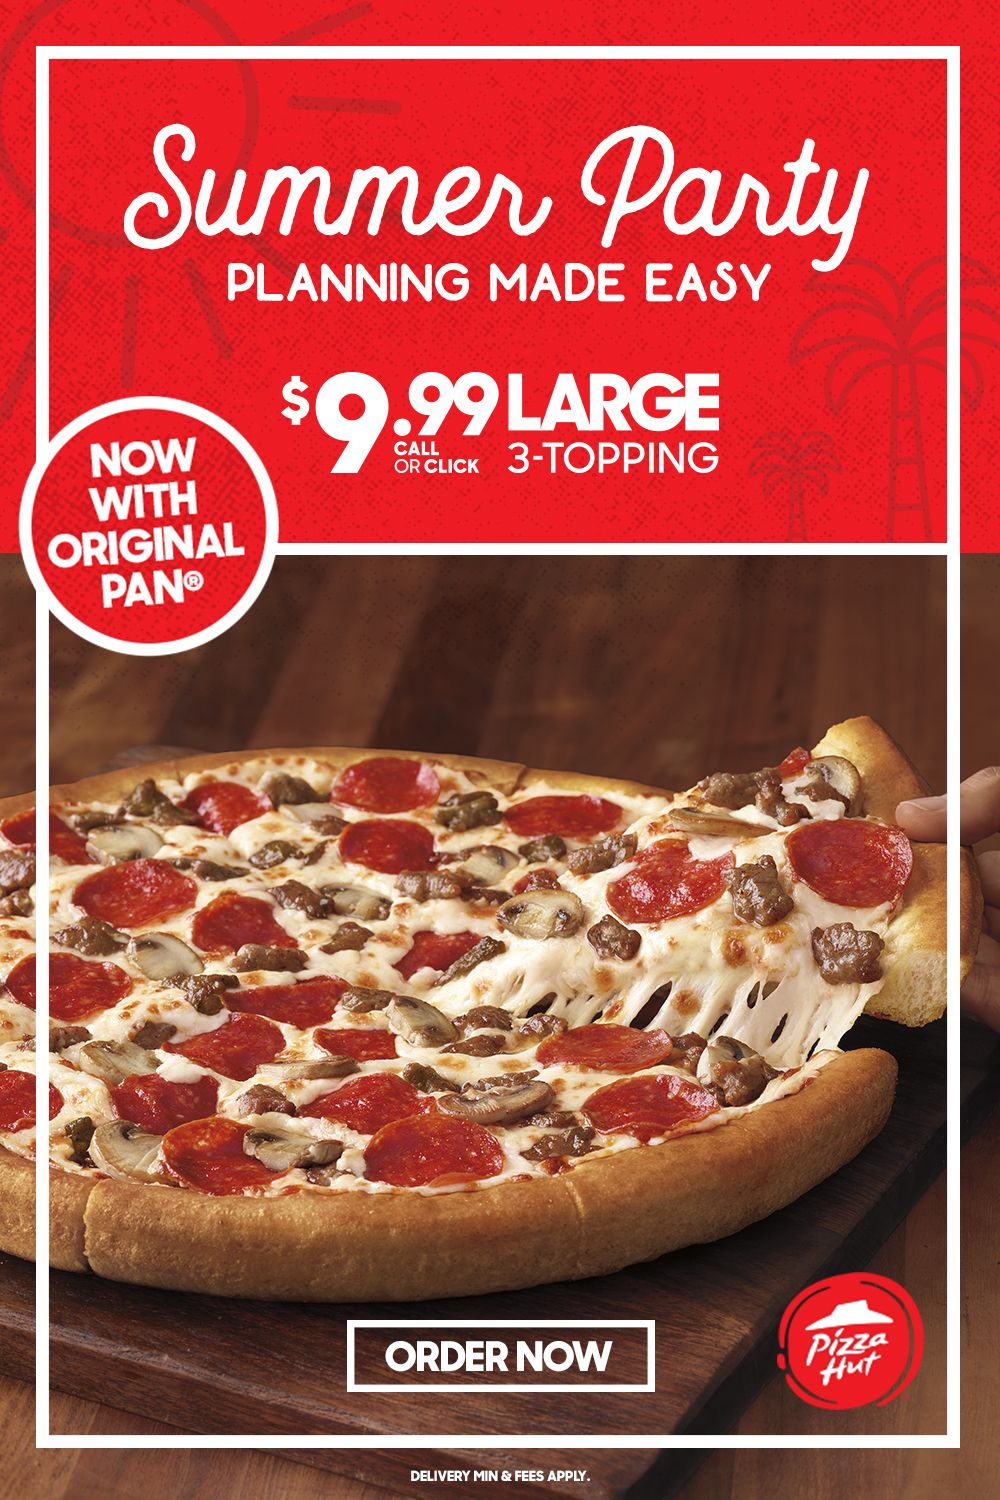 LIMITED TIME ONLY. 9.99 LARGE 3topping, now with